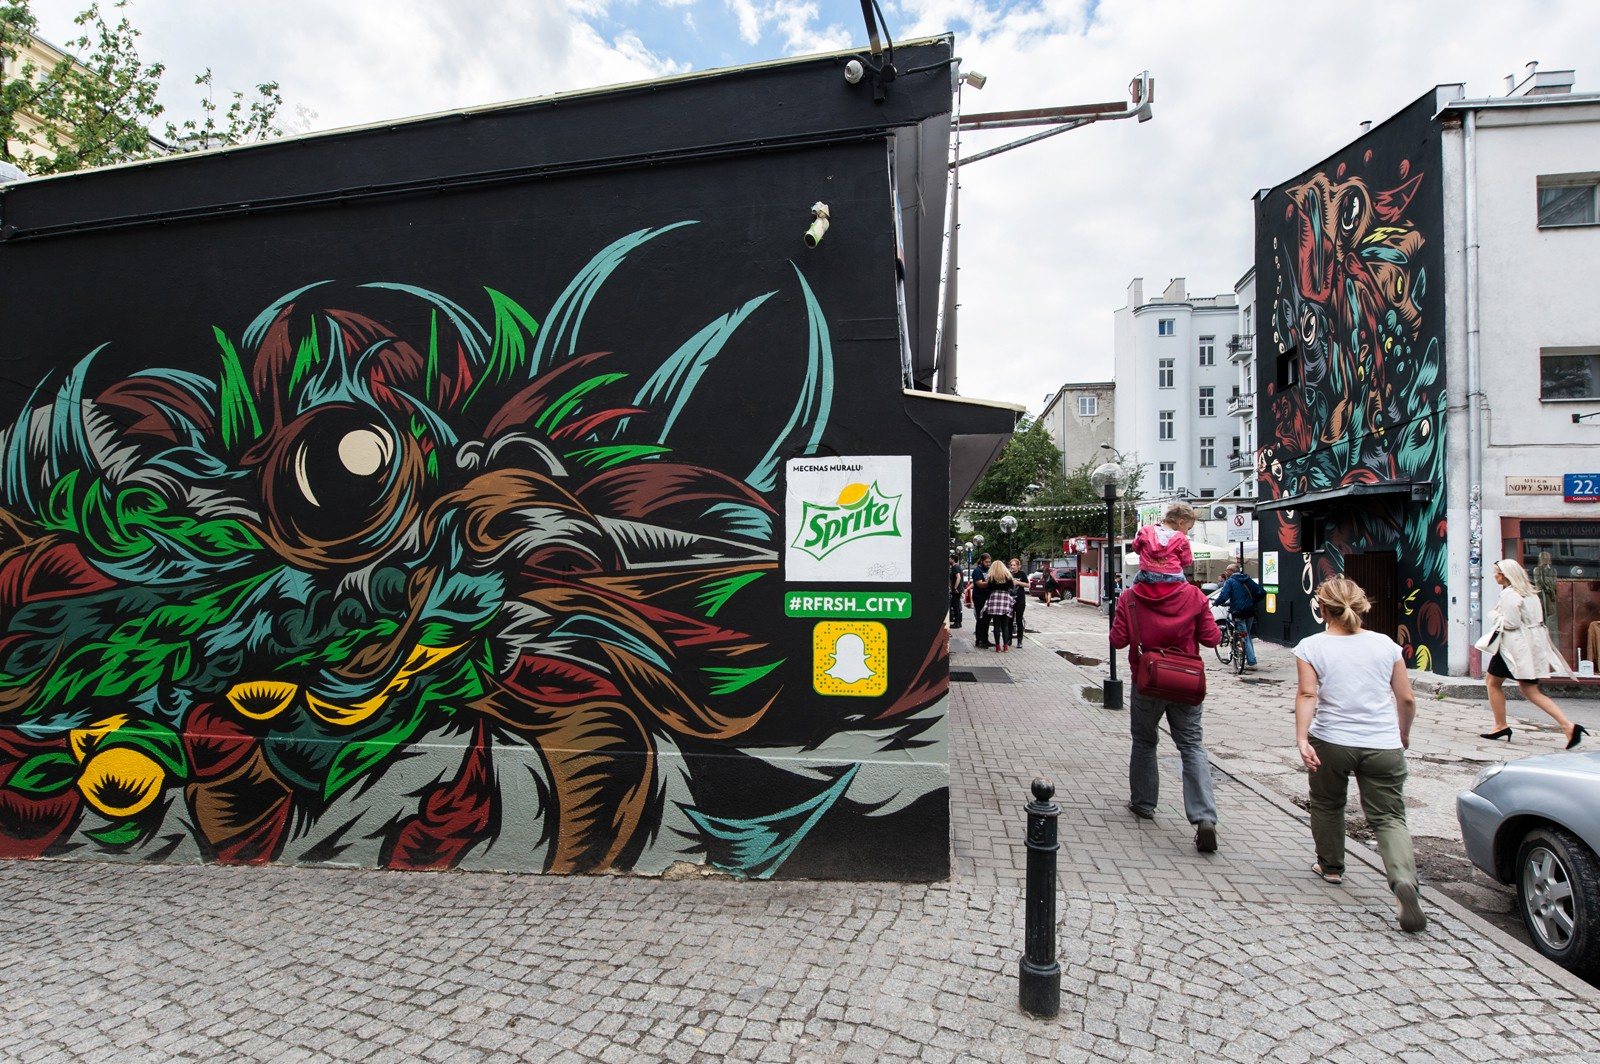 Advertising mural for Sprite by Swanski at 22 Nowy Swiat street | #RFRSH_CITY | Portfolio